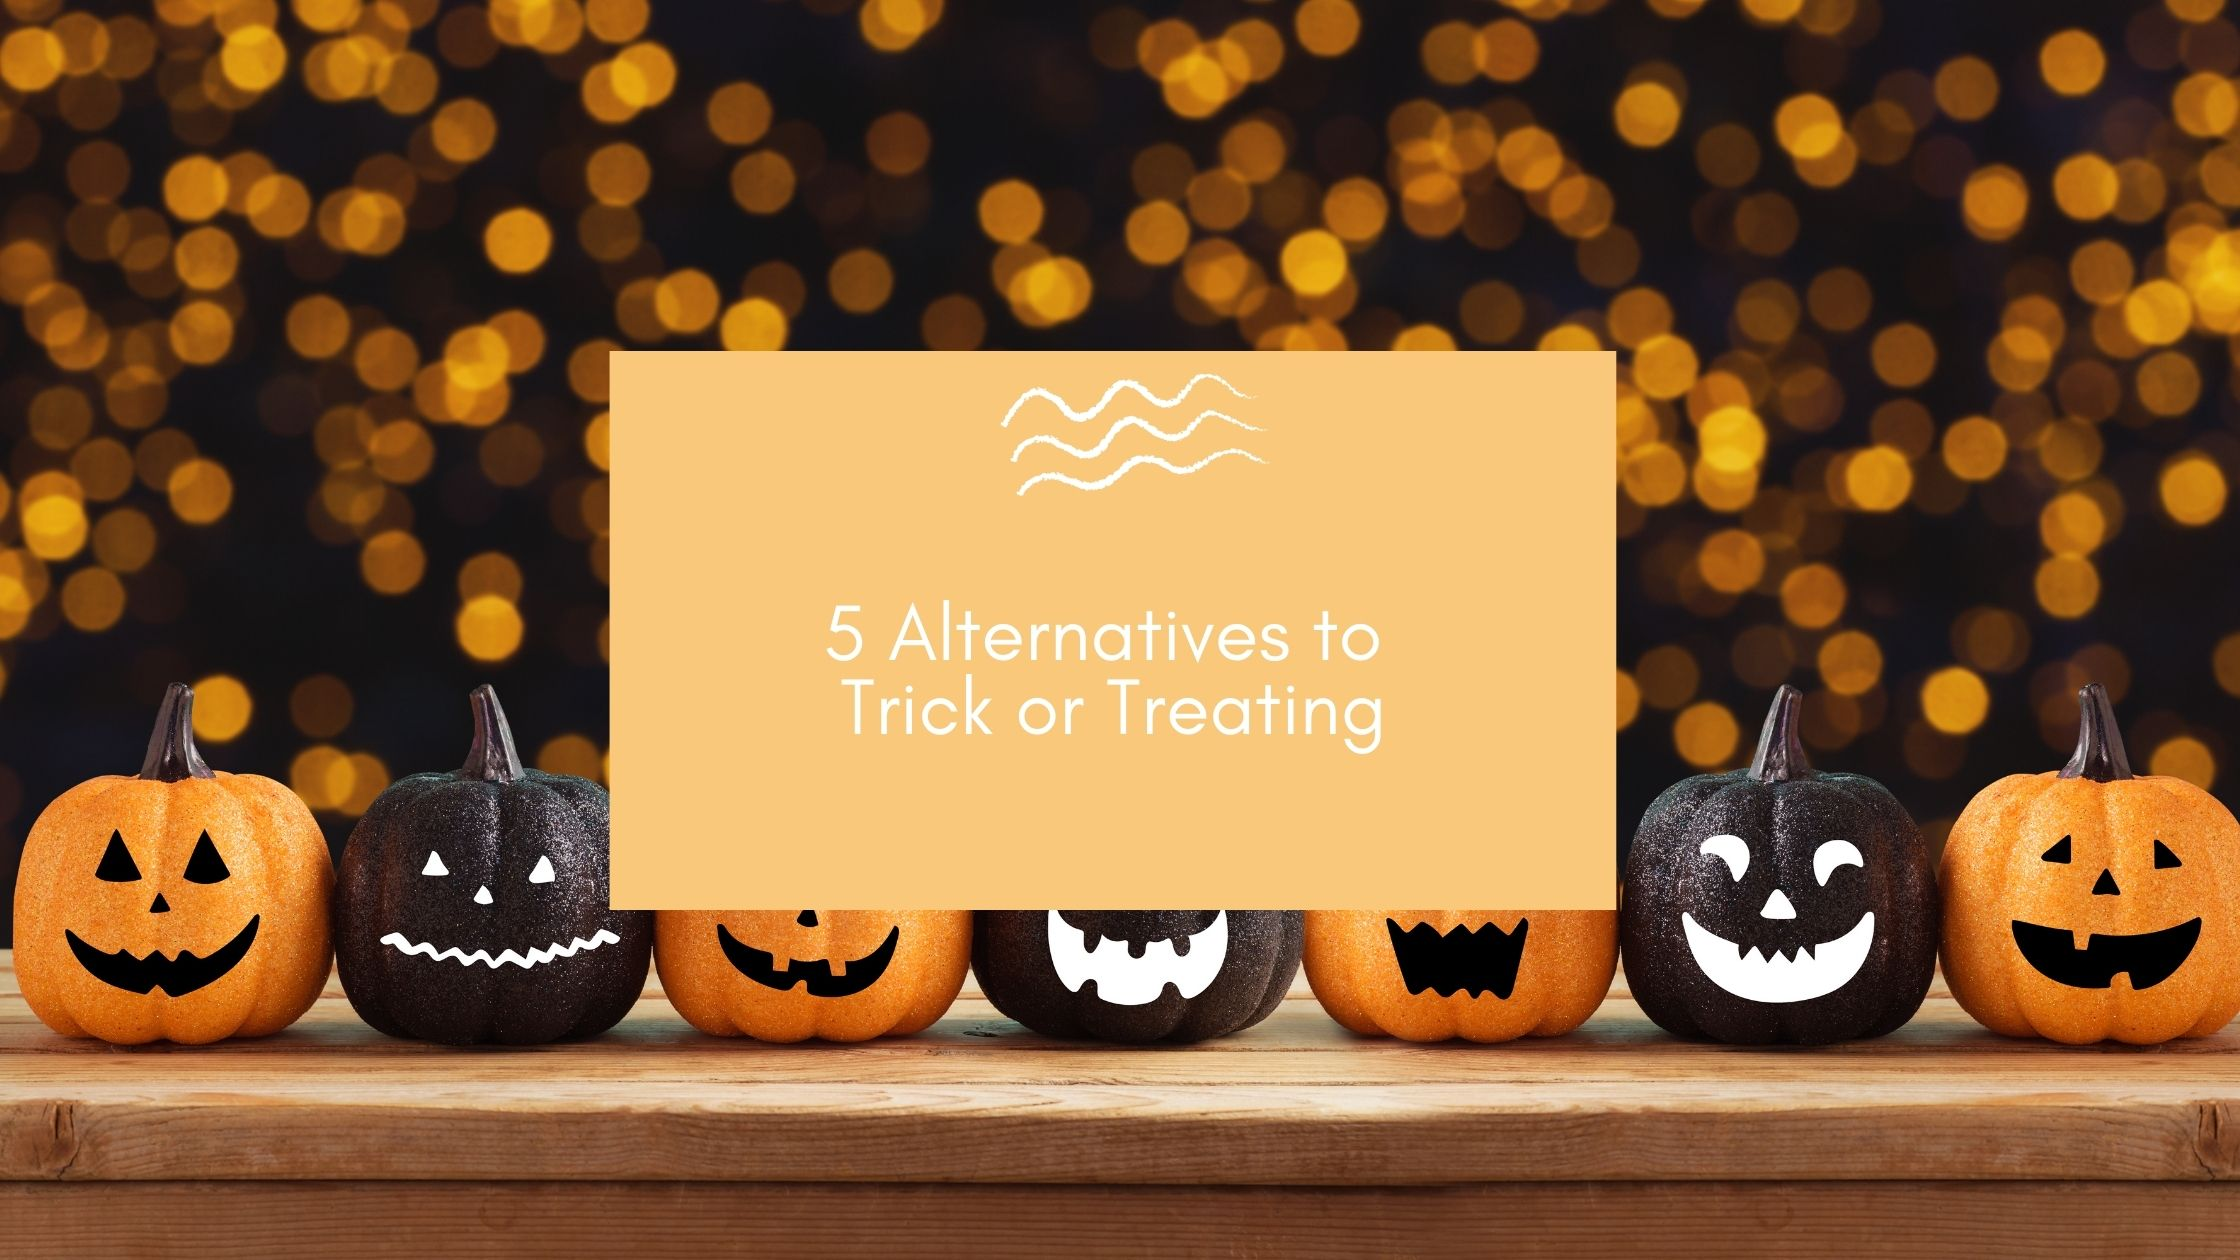 5 Alternatives to Trick or Treating